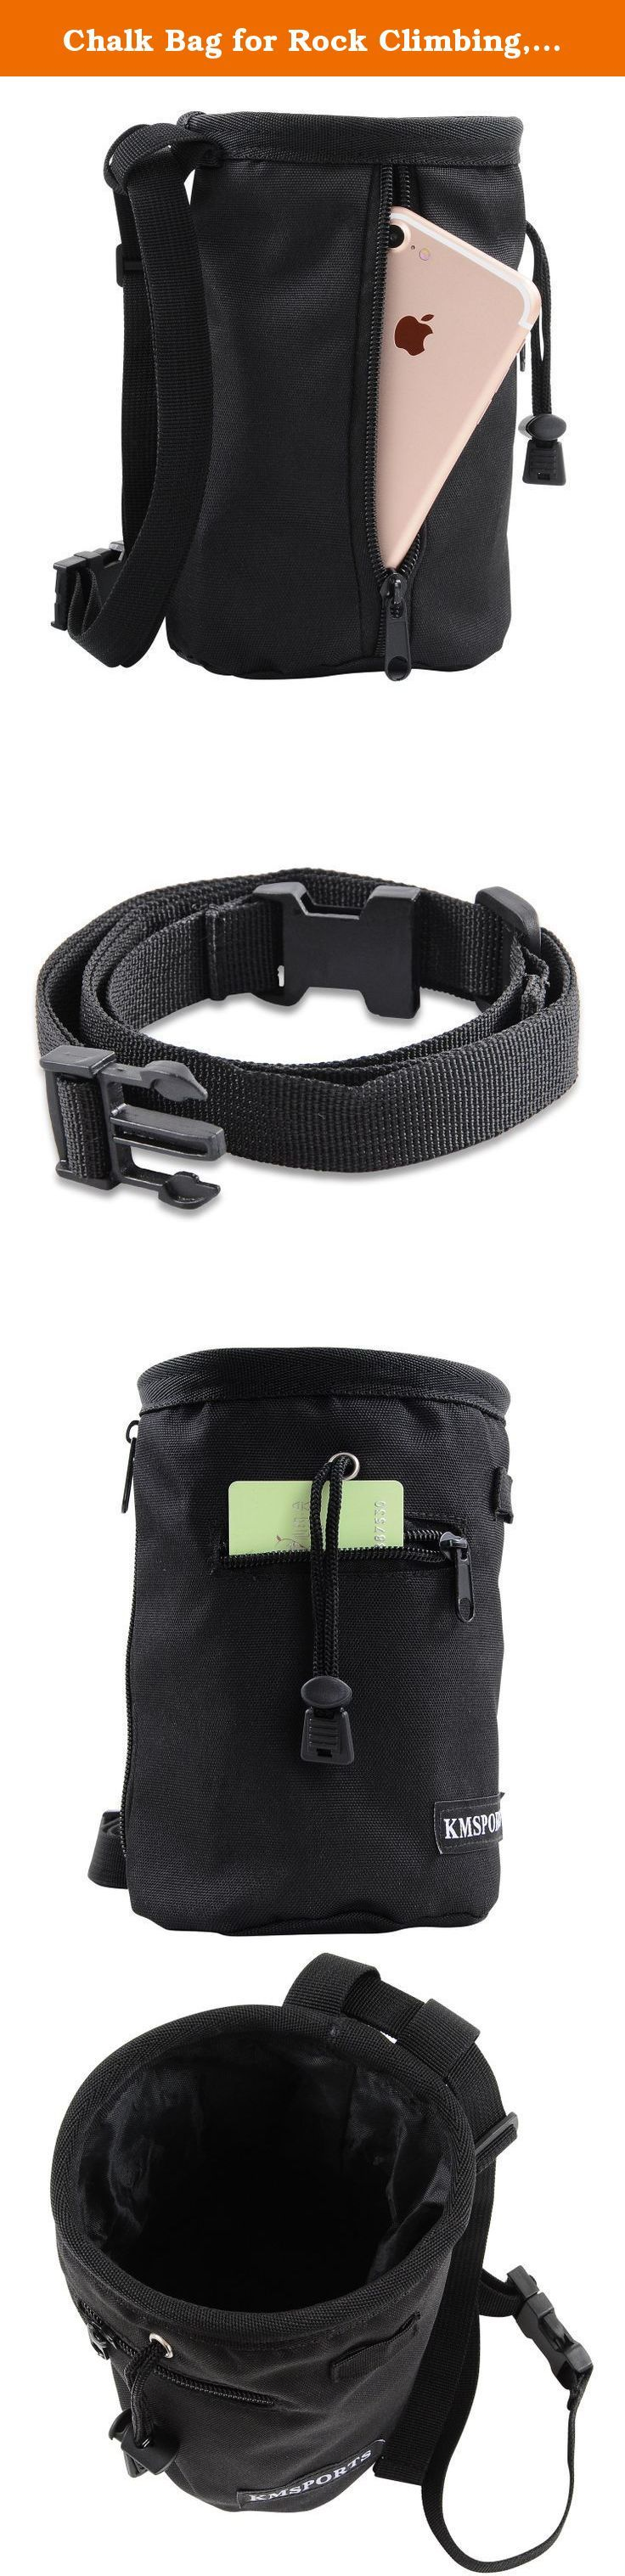 Chalk Bag for Rock Climbing, Weightlifting, Bouldering & Gymnastics with Quick-clip Belt - 2 Large Zippered Pockets for Securely Holding iPhone 6 Plus / Galaxy S6+ and Other Valuables. Premium heavy duty quality Chalk Bag,Make you climb to the top easily. 2 Large Zippered Pockets 2 large zippered pockets for securely holding iPhone 6 Plus / Galaxy S6+ and other Valuables while climbing Premium Heavy Duty Quality with Tactical Design Strong and durable for many uses , use as a Rock…